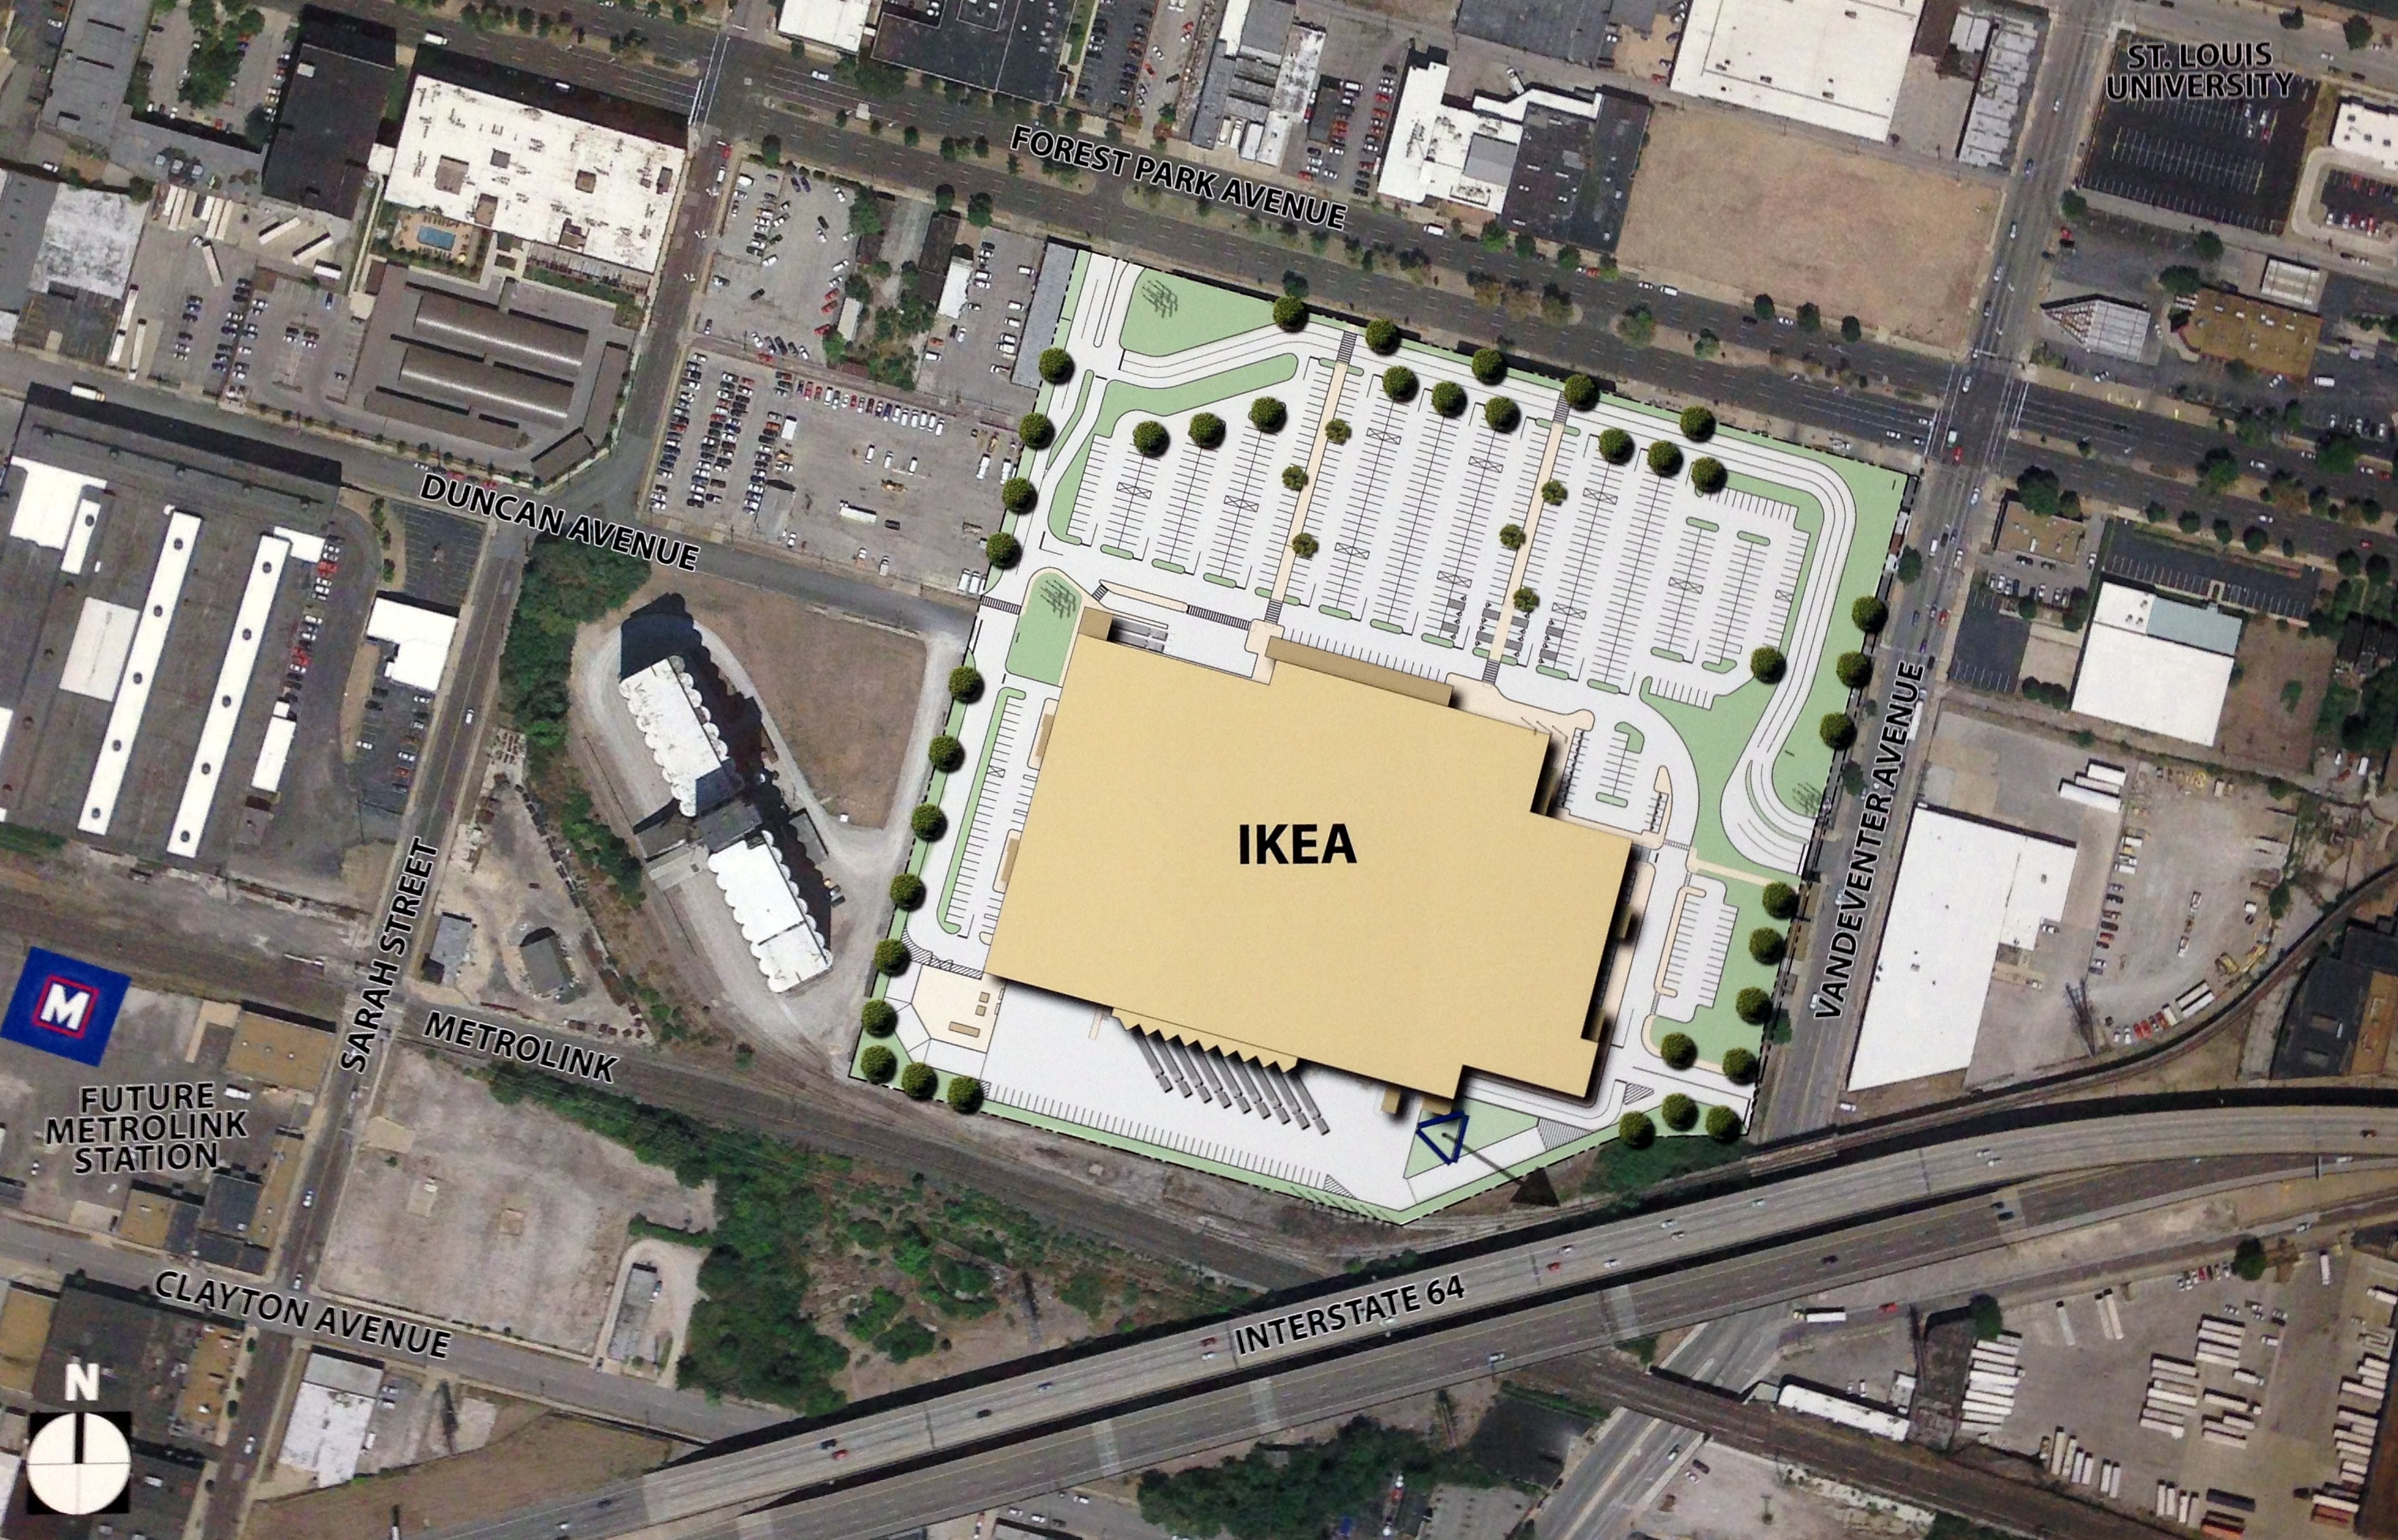 City of St. Louis - IKEA